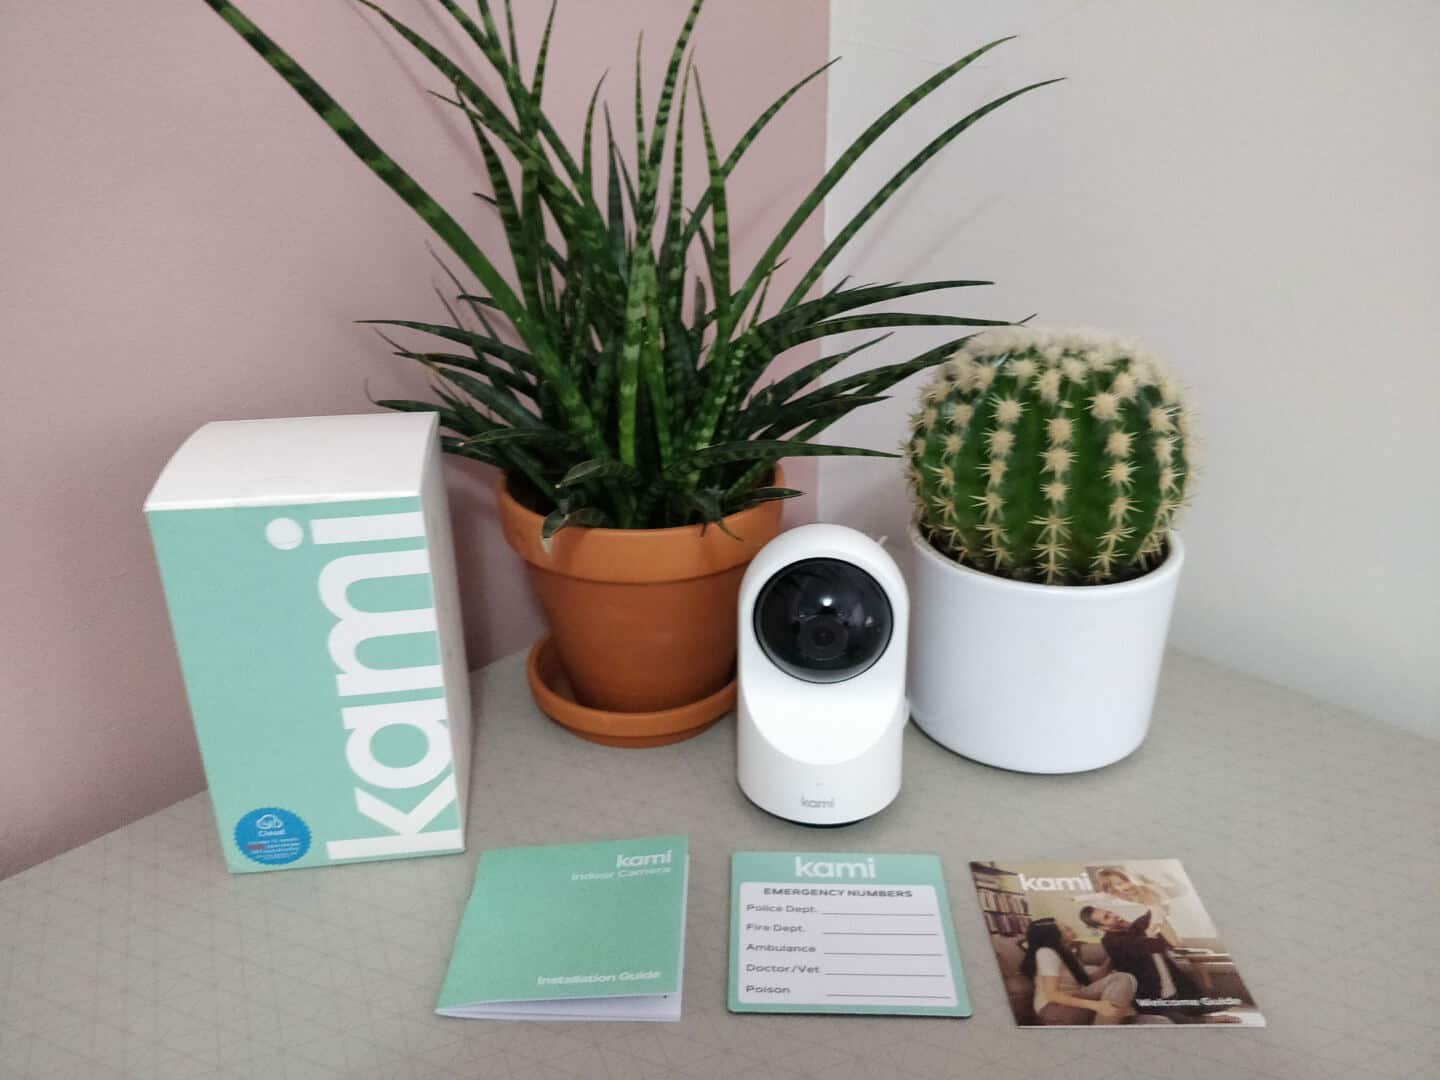 Kami indoor home security camera on a table between two plants. The empty box and leaflets are also on the table